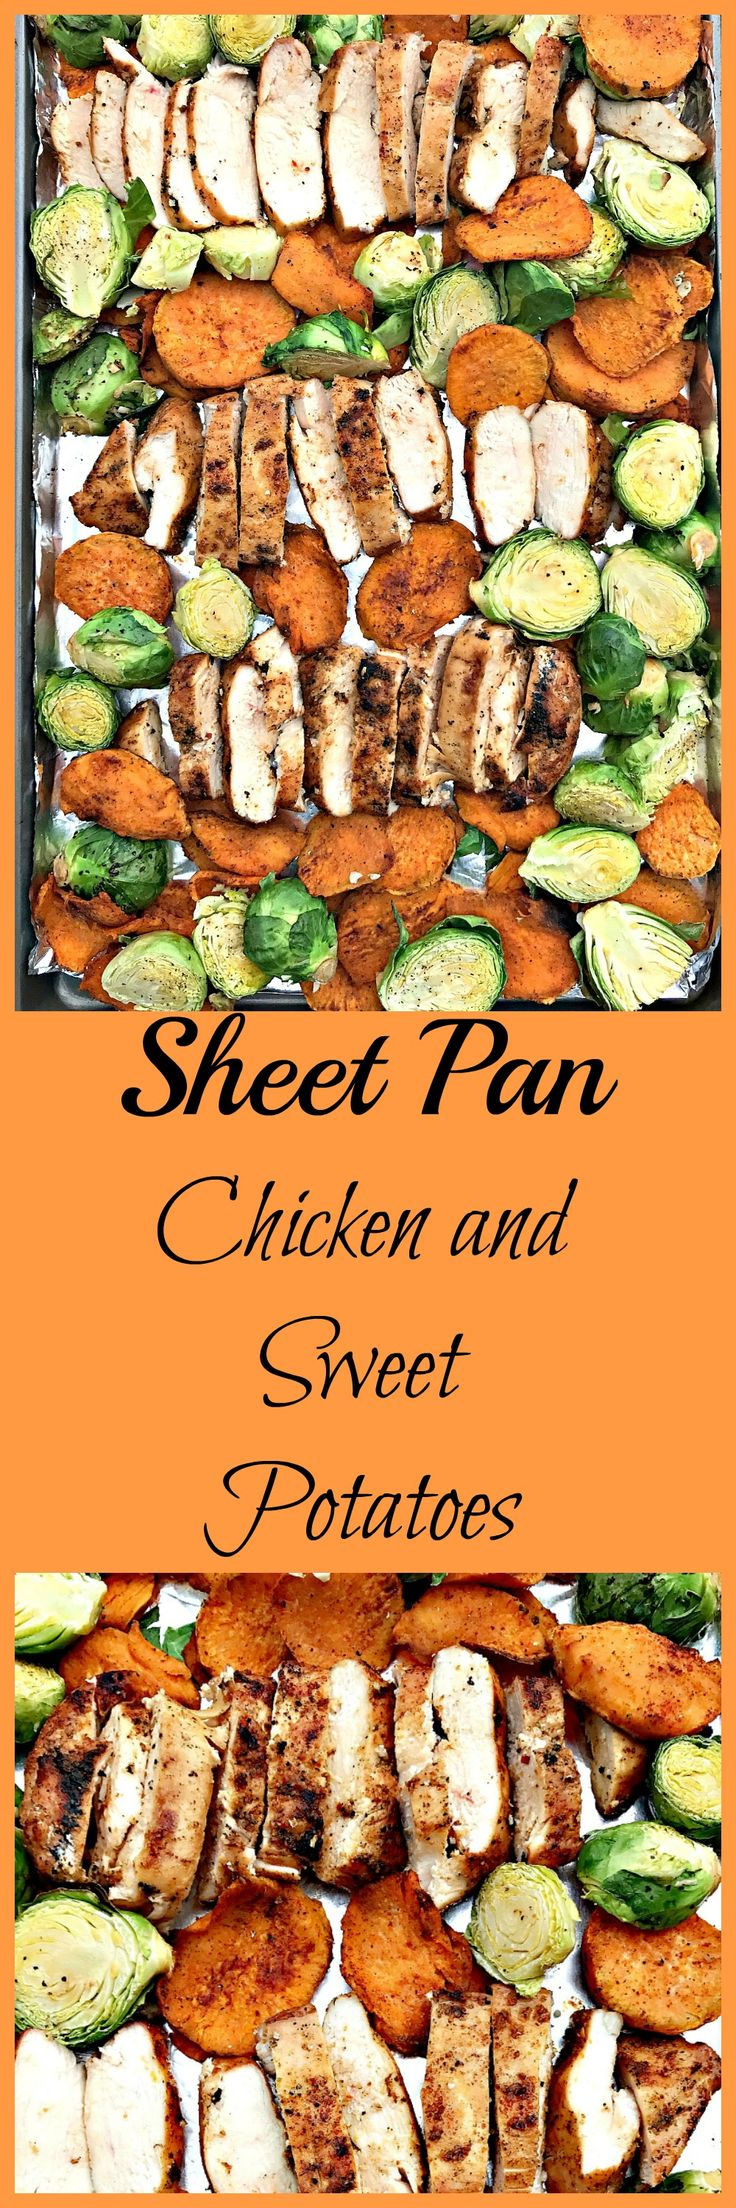 Quick and easy sheet pan dinner with savory chicken, sweet potatoes with olive oil and cinnamon, and brussels sprouts.